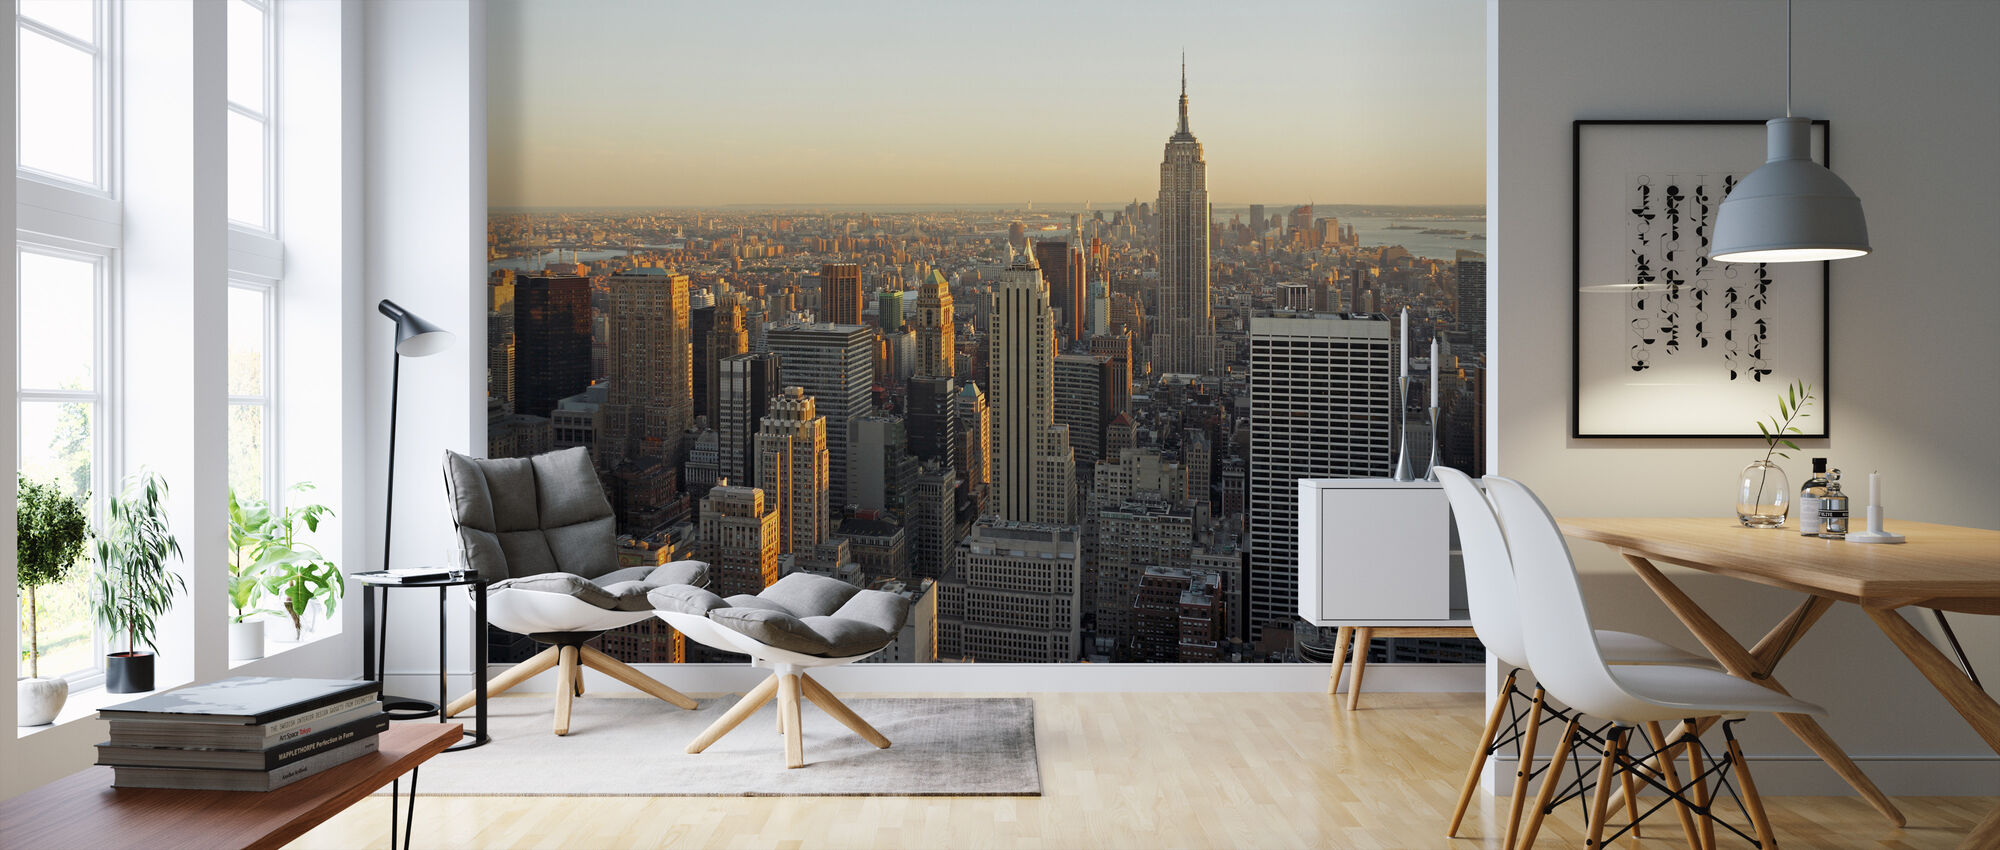 New York City, New York - Tapete - Wohnzimmer